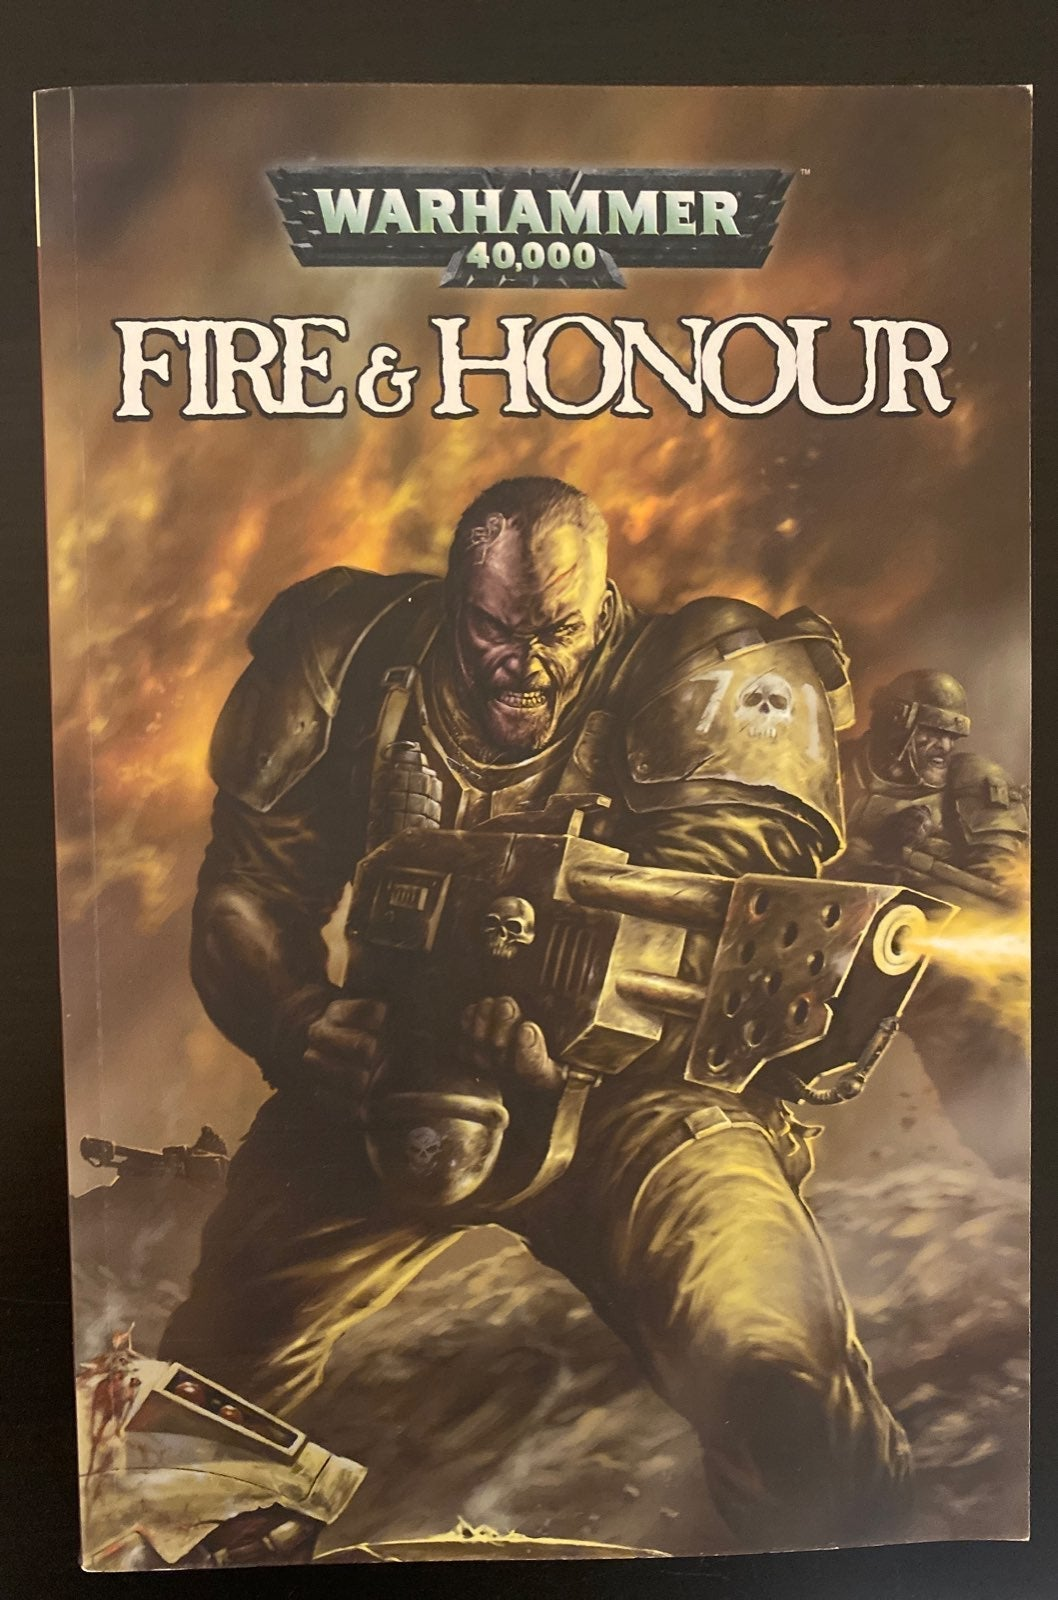 warhammer 40k, Fire and Honor